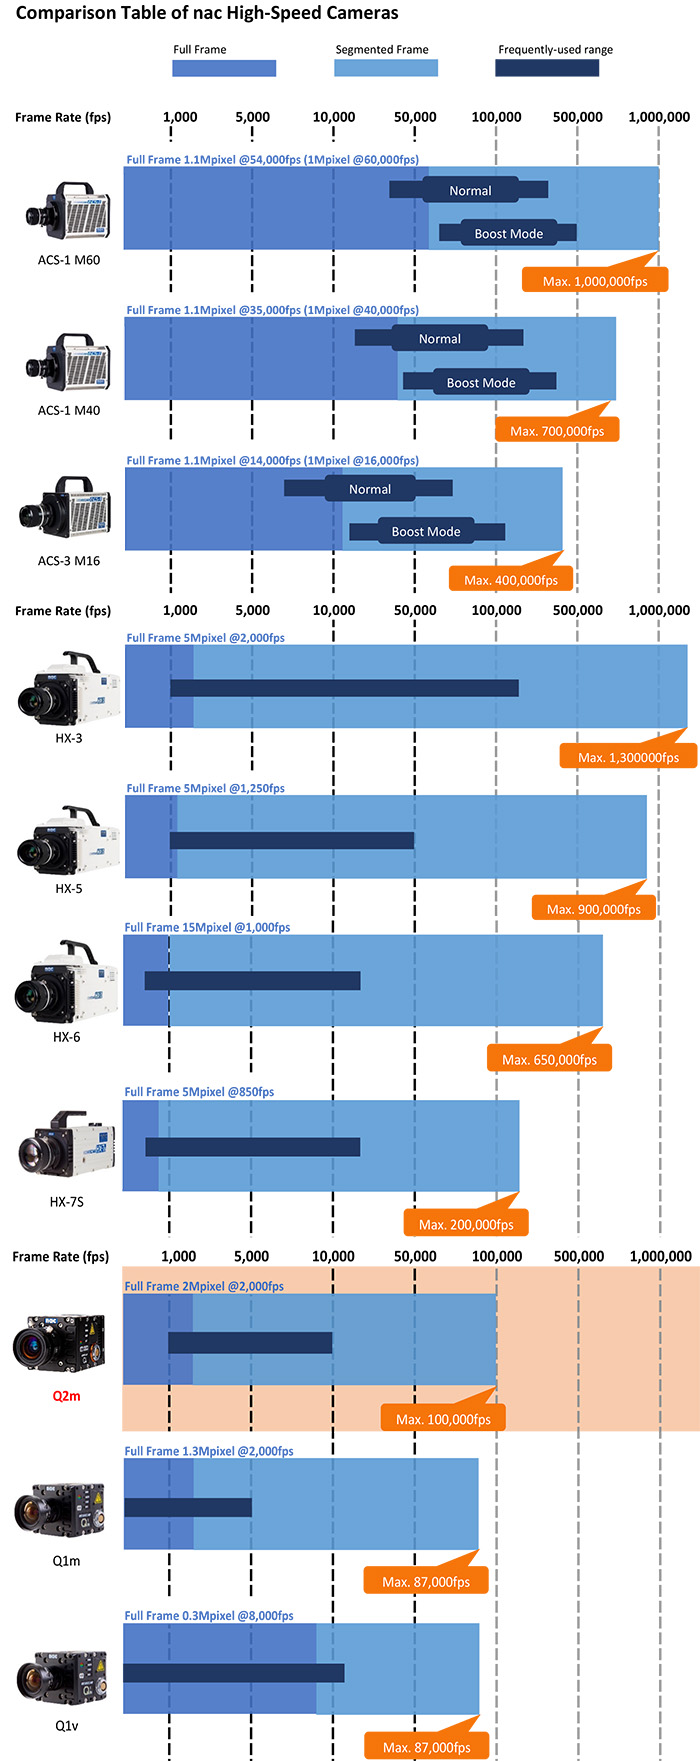 Comparison of Frame Rates for NAC High Speed Cameras